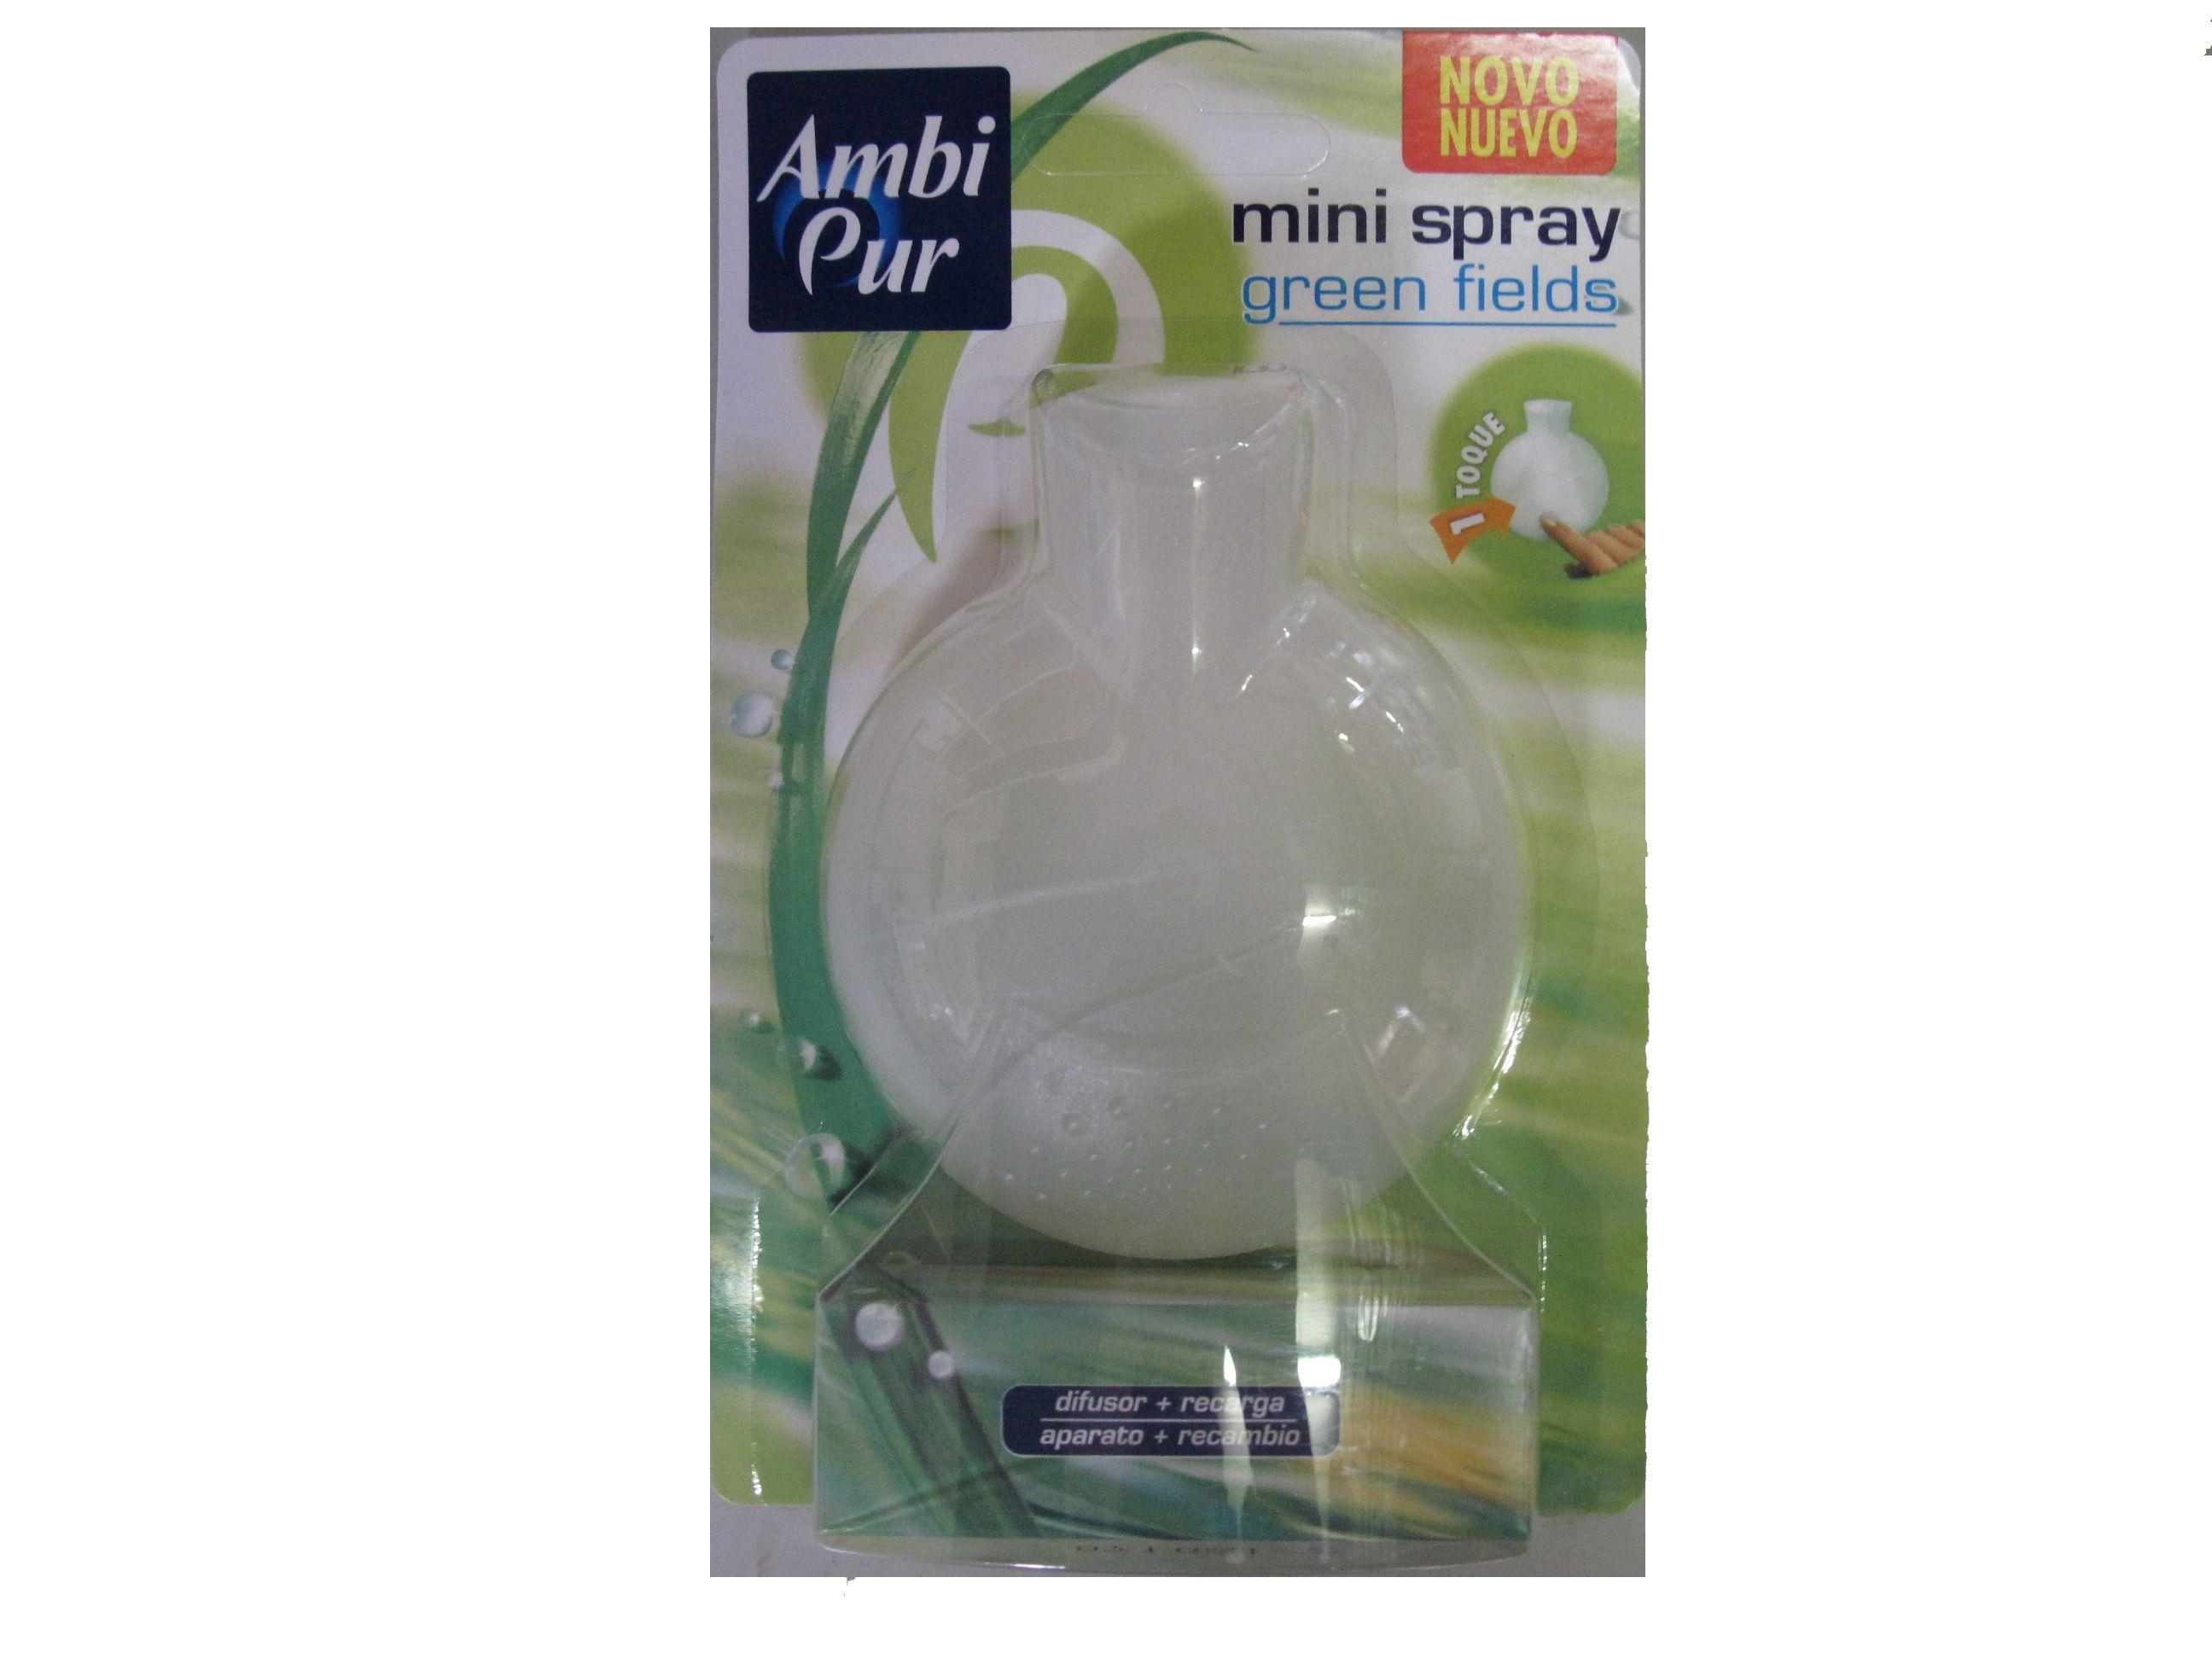 Ambi Pur Mini Spray Green Fields Luchtverfrisser 10 ml